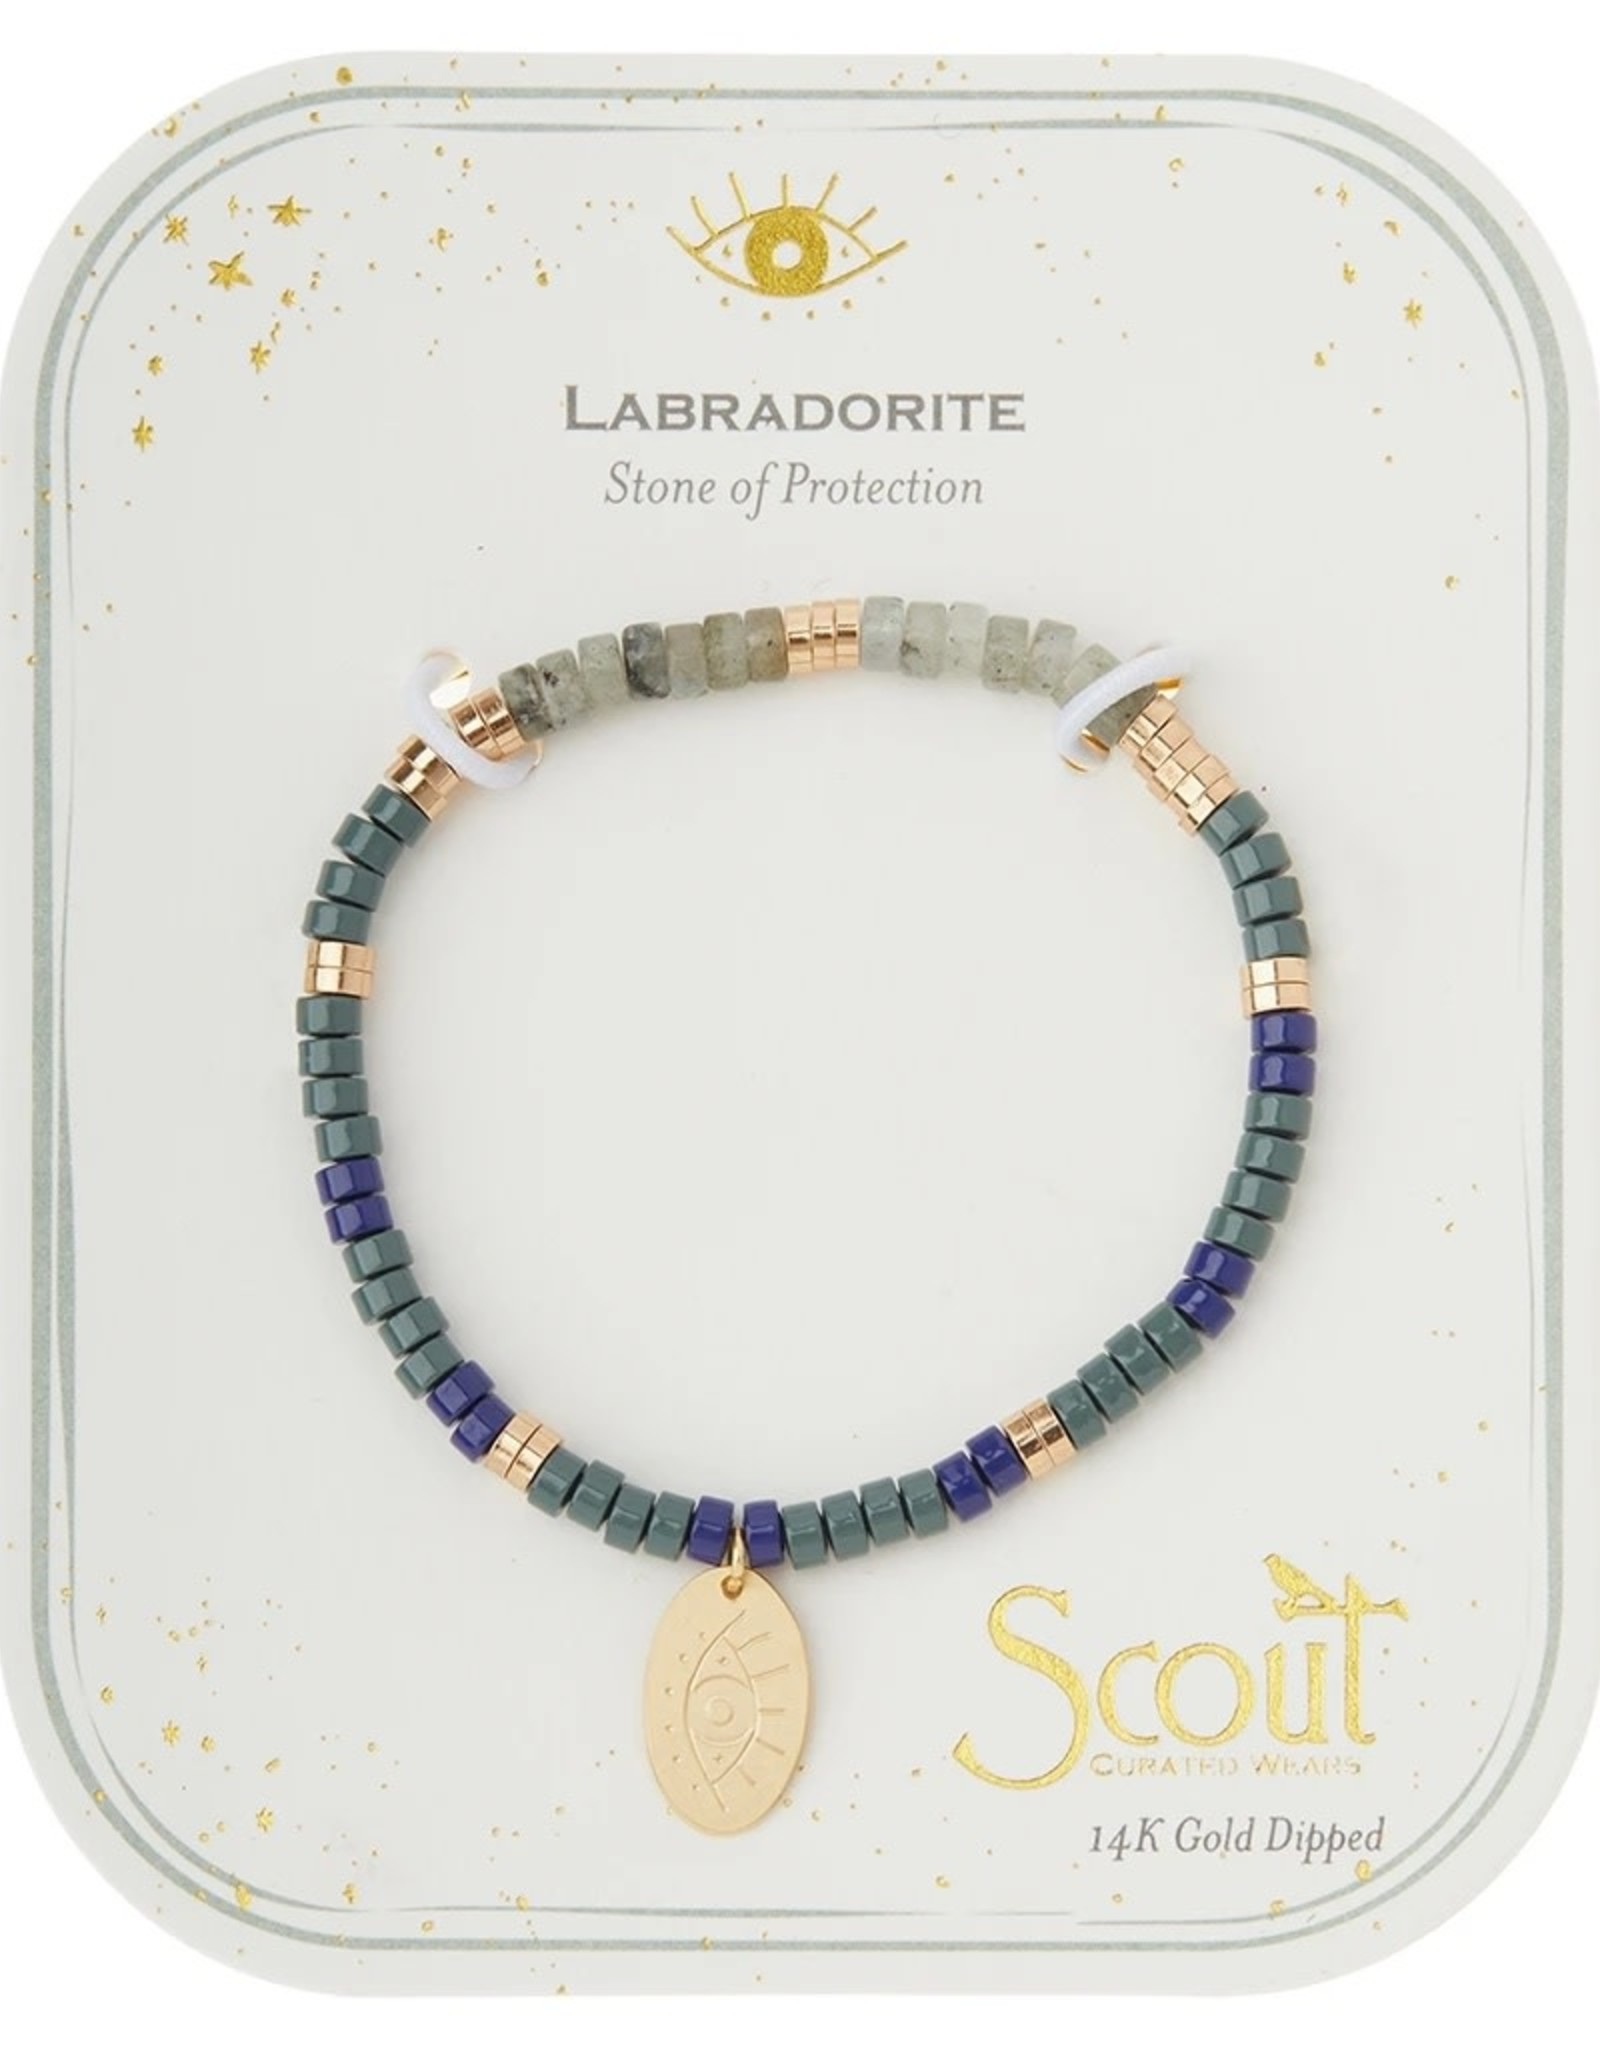 Scout Scout Stone Intention Charm Bracelet